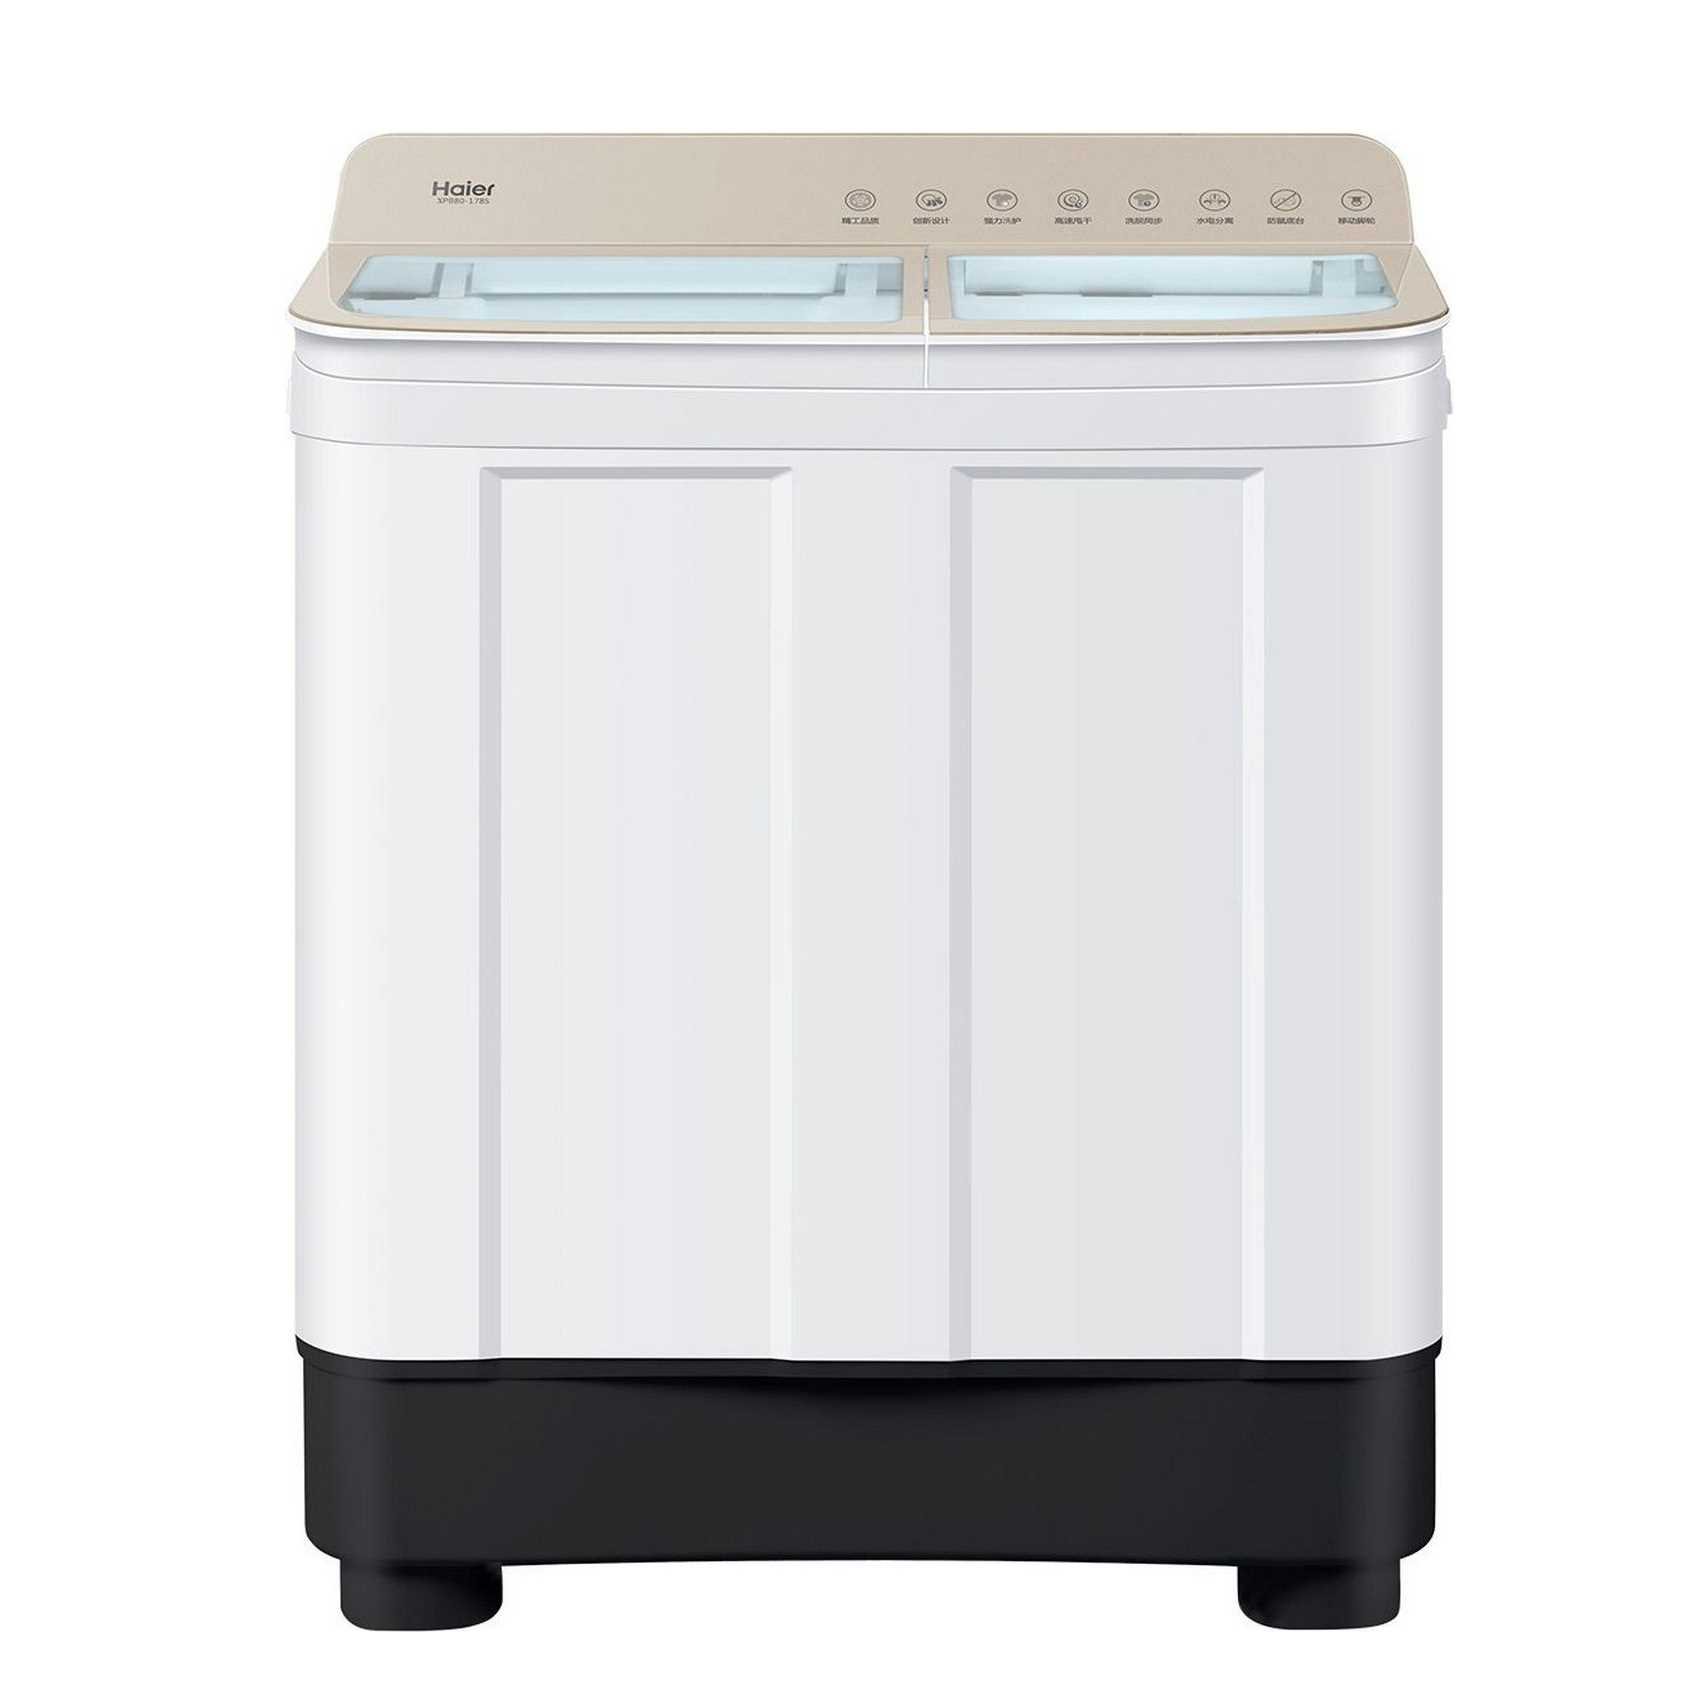 Haier HTW70-178 7 Kg Semi Automatic Top Loading Washing Machine